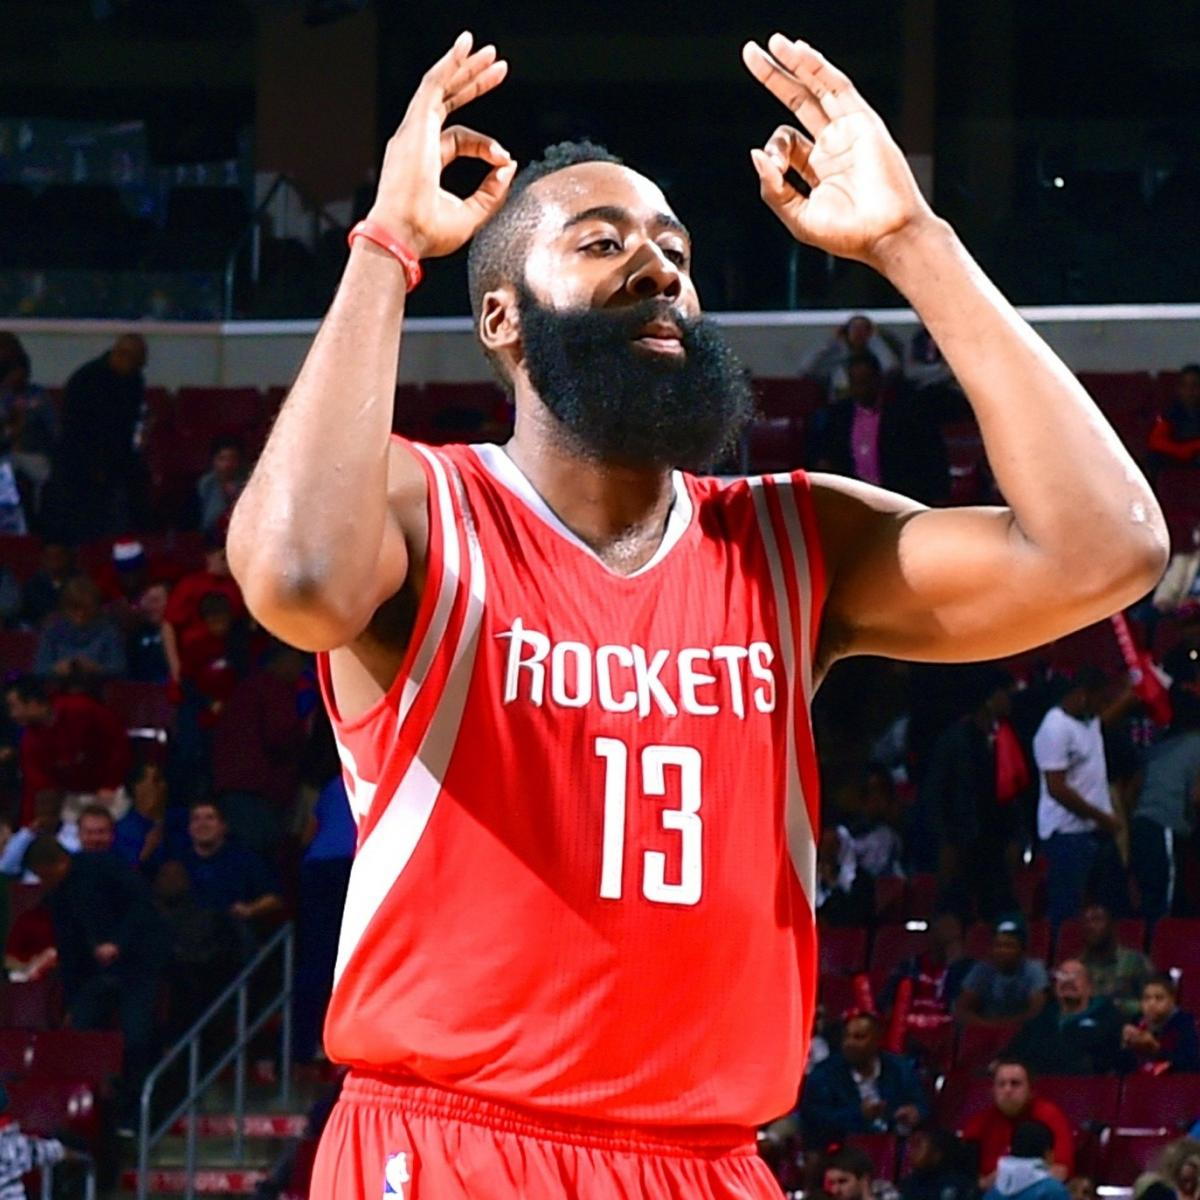 James Harden Points Last Night: The Numbers Behind James Harden's Hot Start And Other